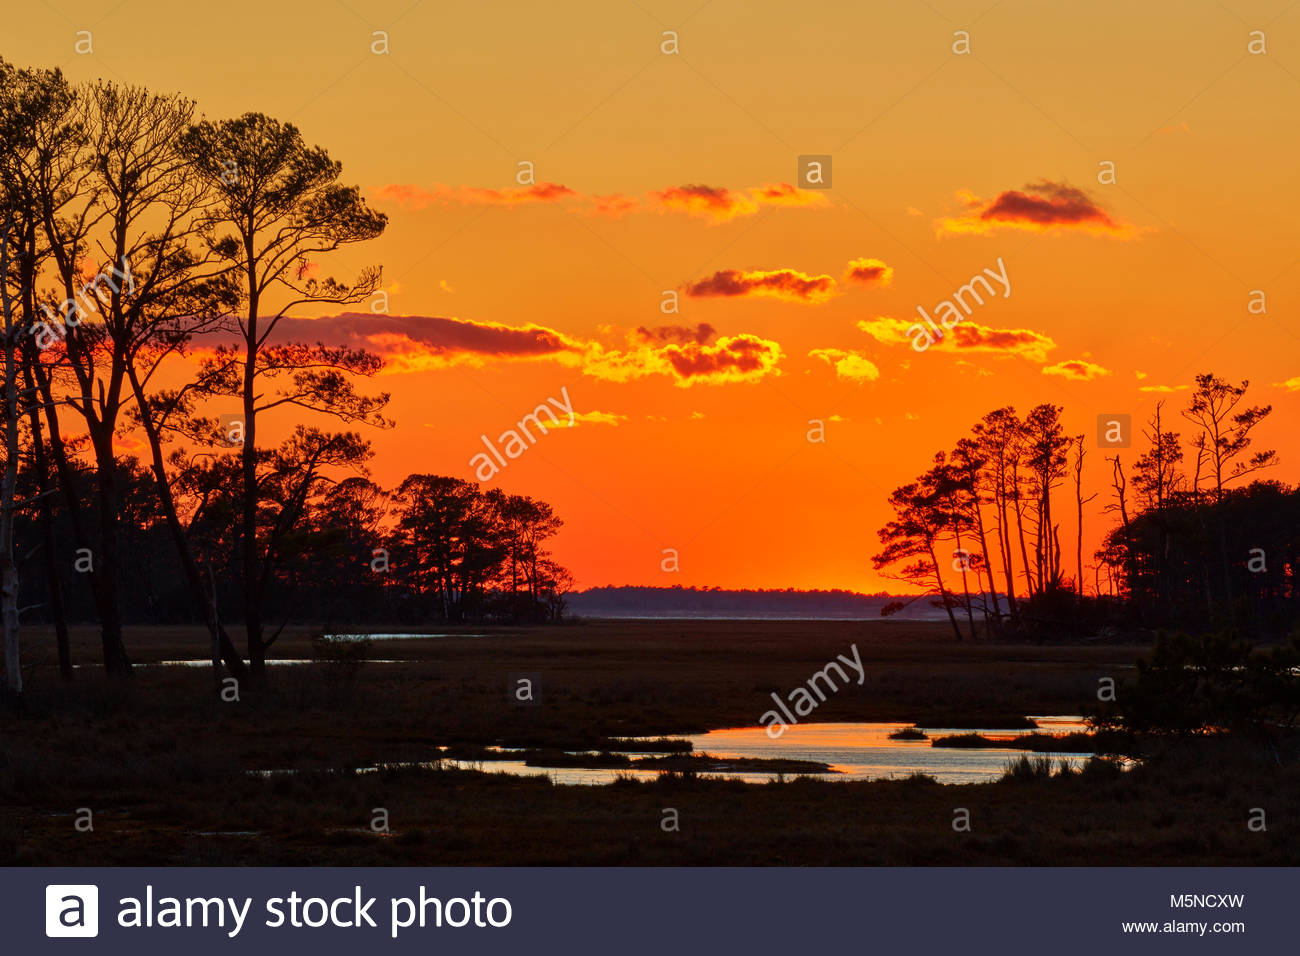 The orange post-sunset sky is reflected in the ponds found in the marsh of the Chincoteaque National Wildlife Refuge - Stock Image